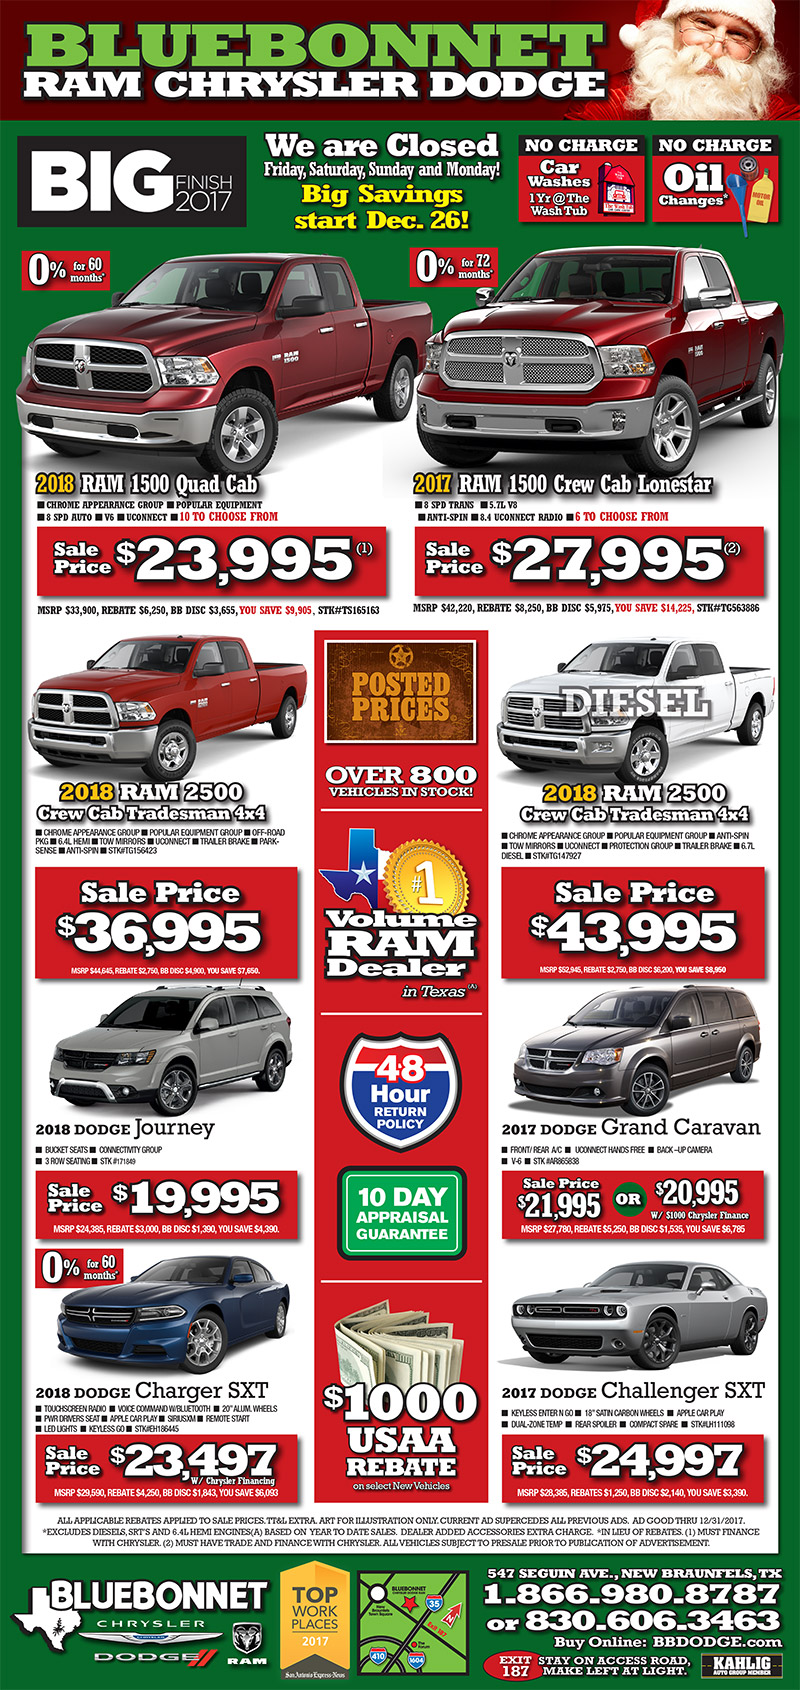 Check Out Bluebonnet Chrysler Dodge Newspaper Ad To See The Best